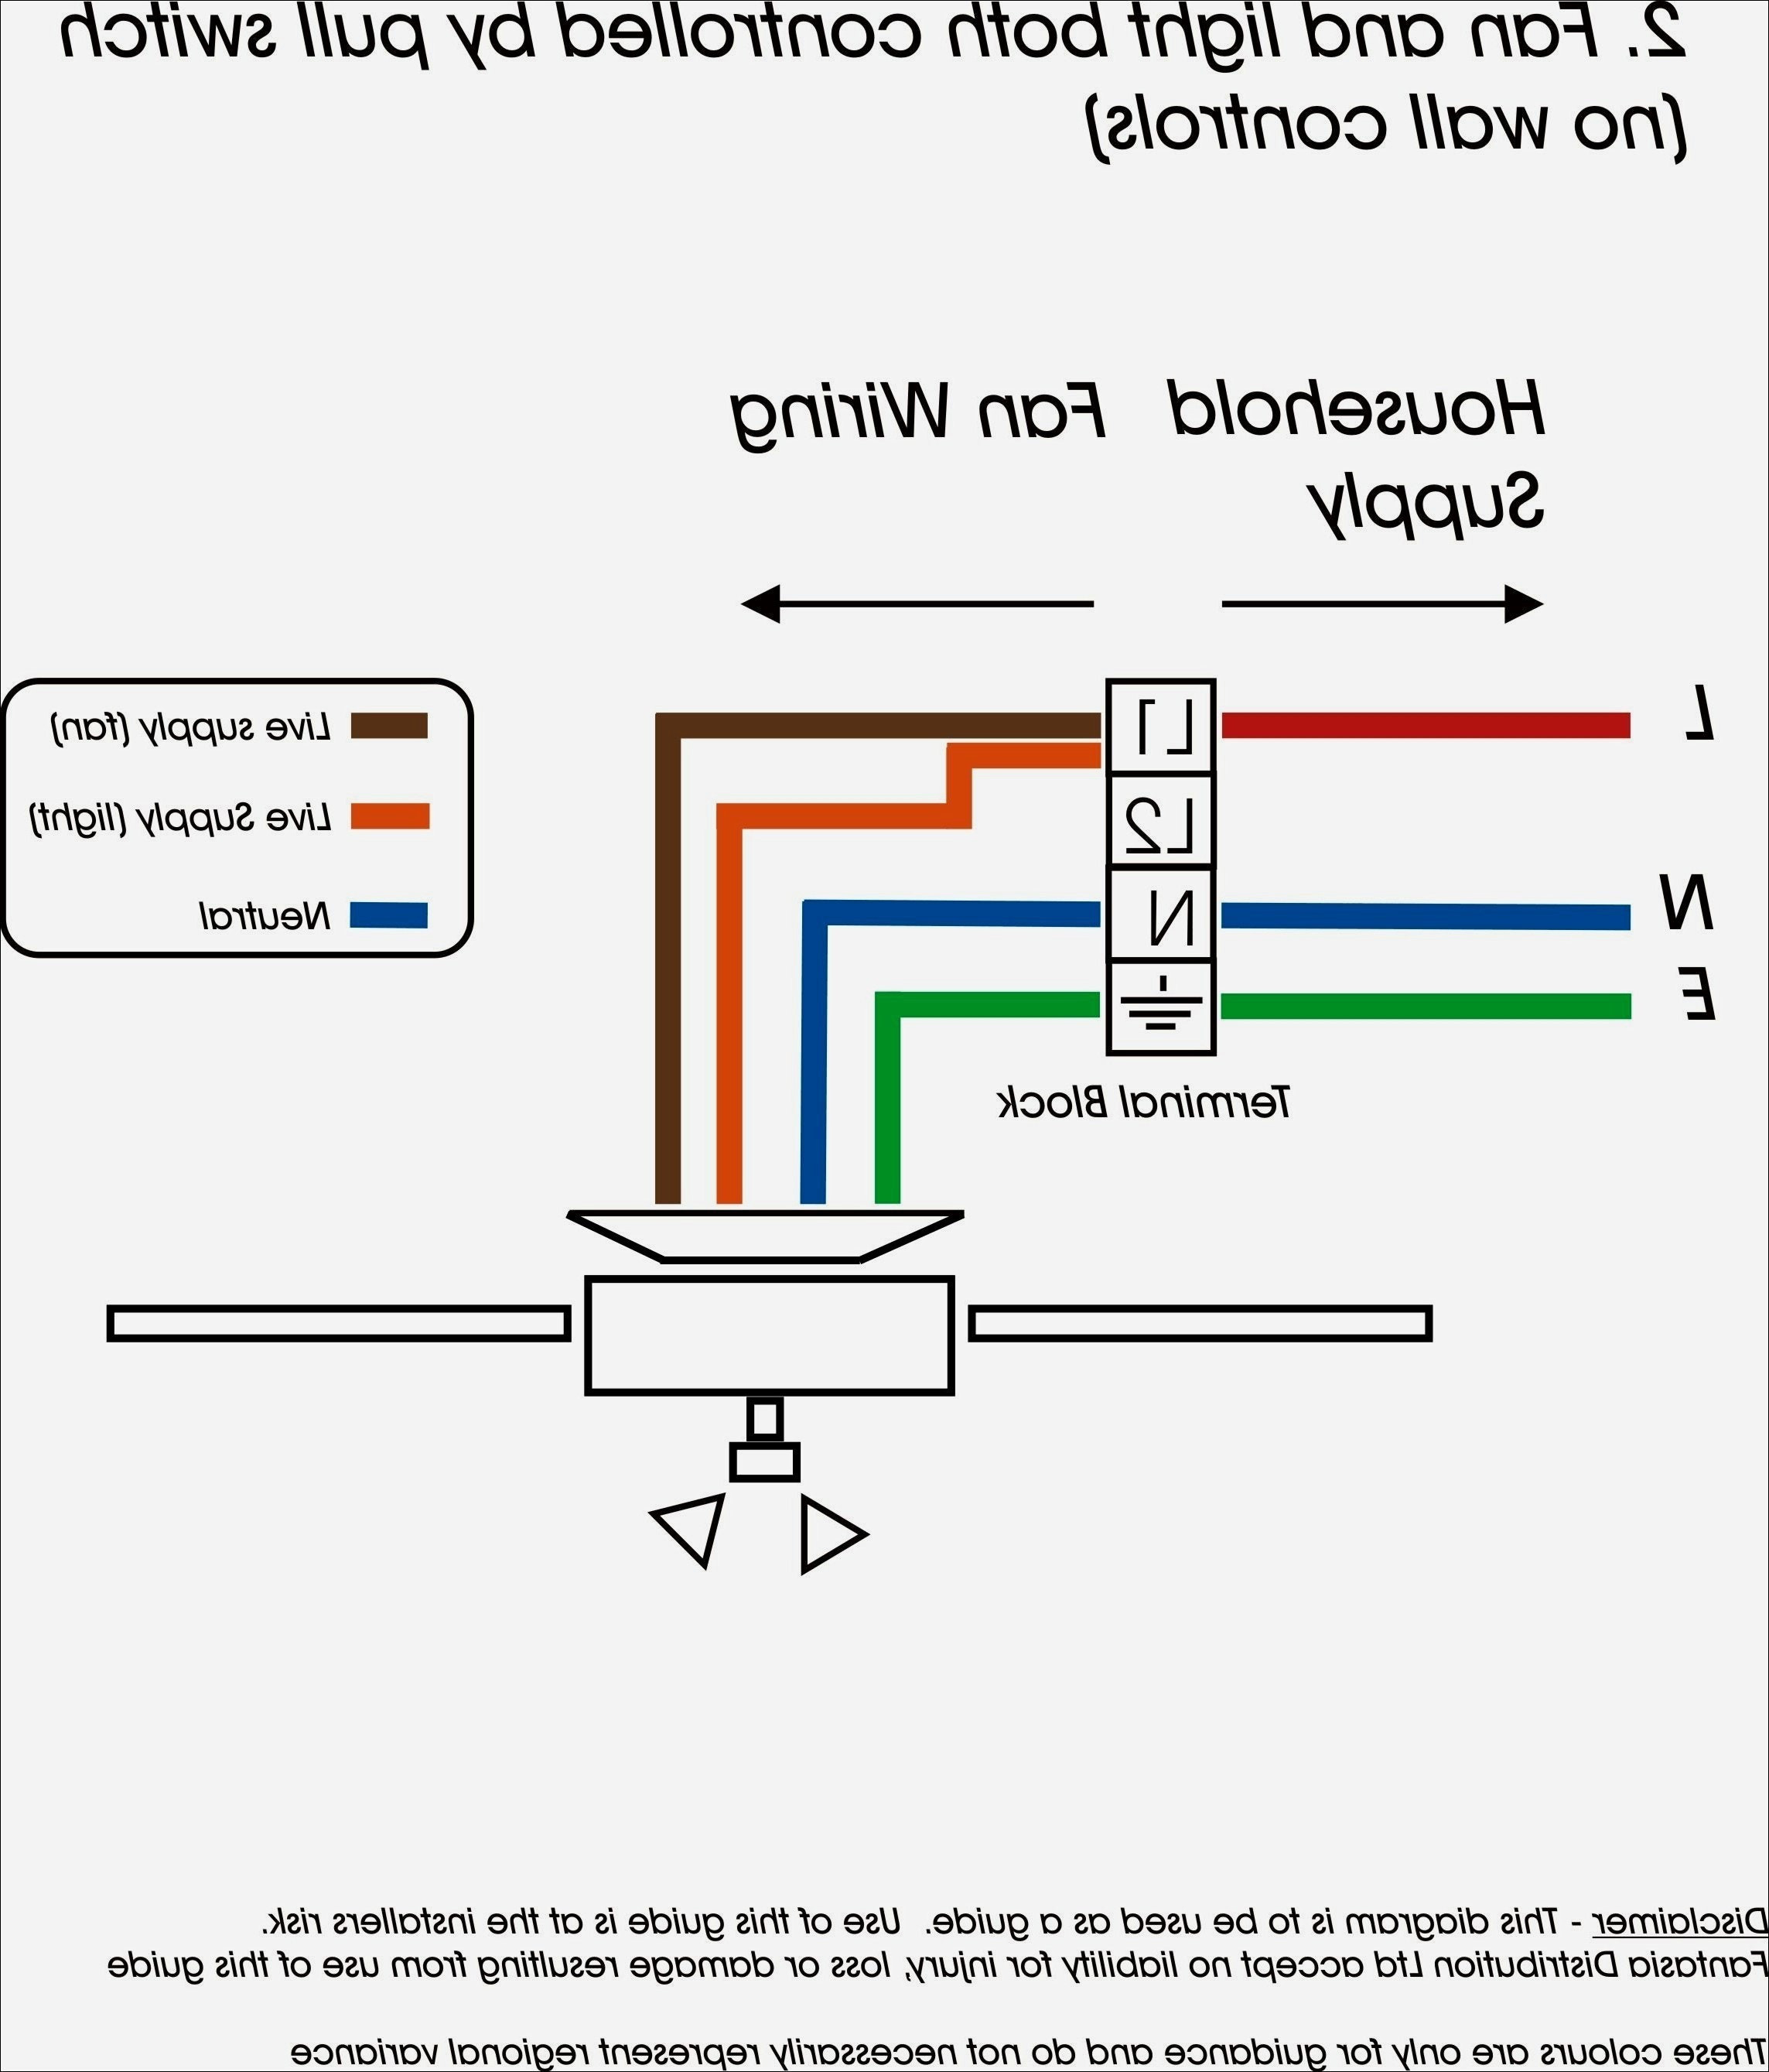 lutron dimmer switch wiring diagram Download-Valid Wiring Diagram for Dimmer Switch Australia 18-q